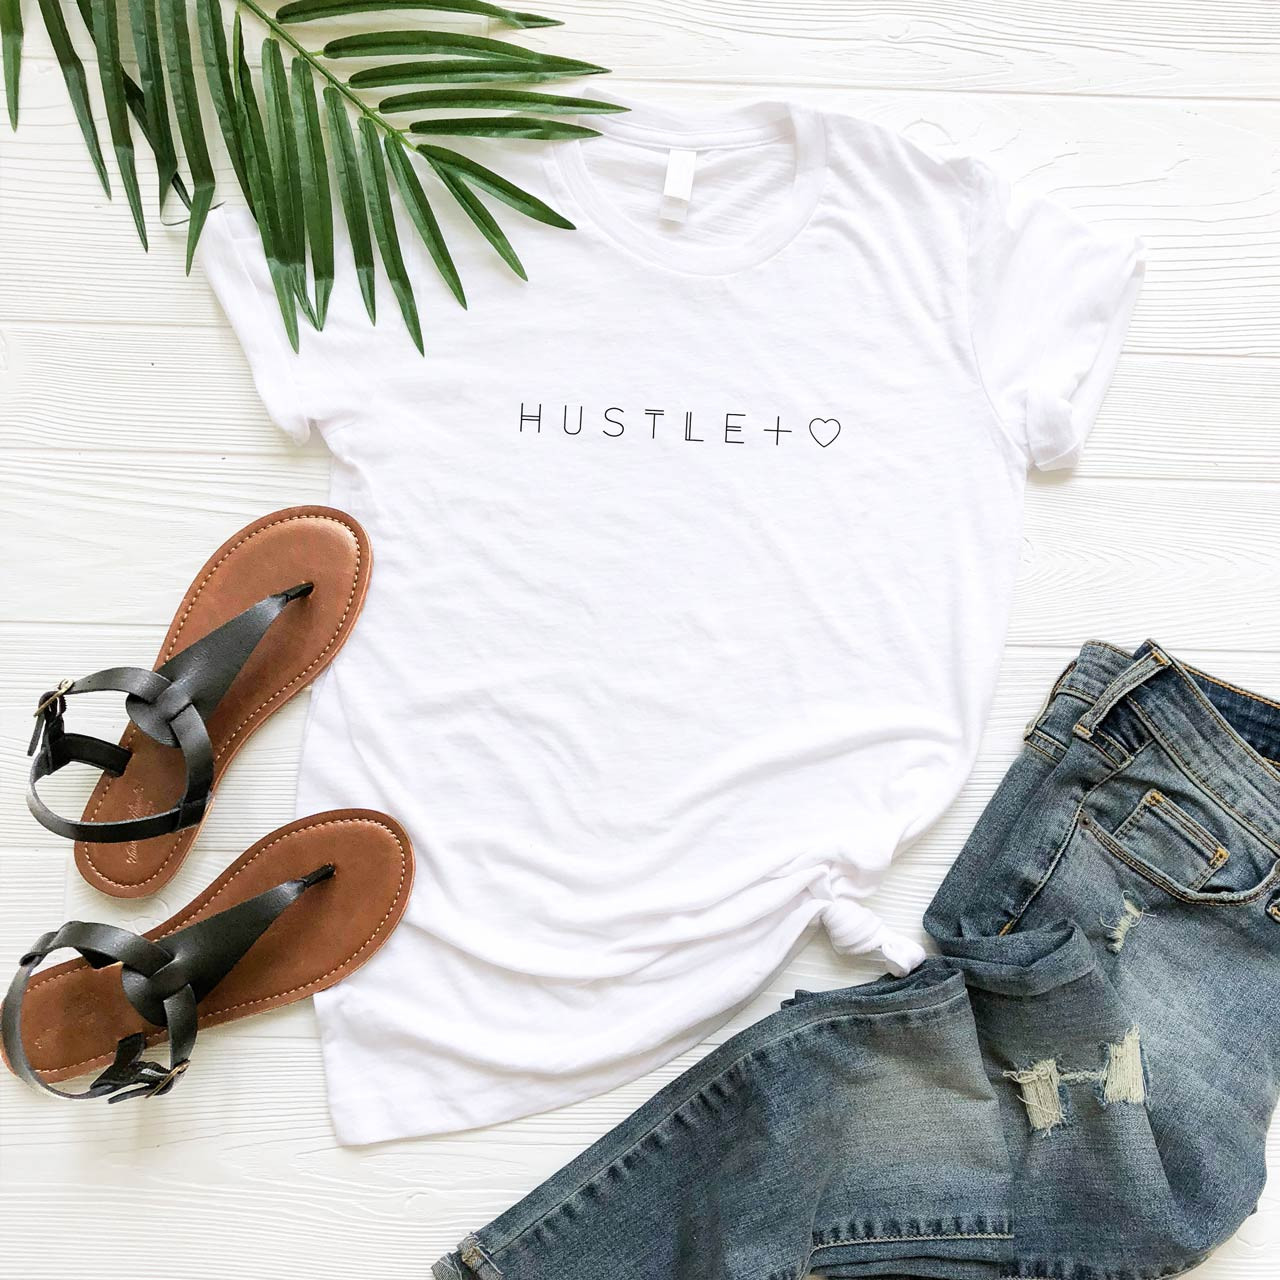 HUSTLE + HEART Cotton T-Shirt (Black on White) from The Printed Home